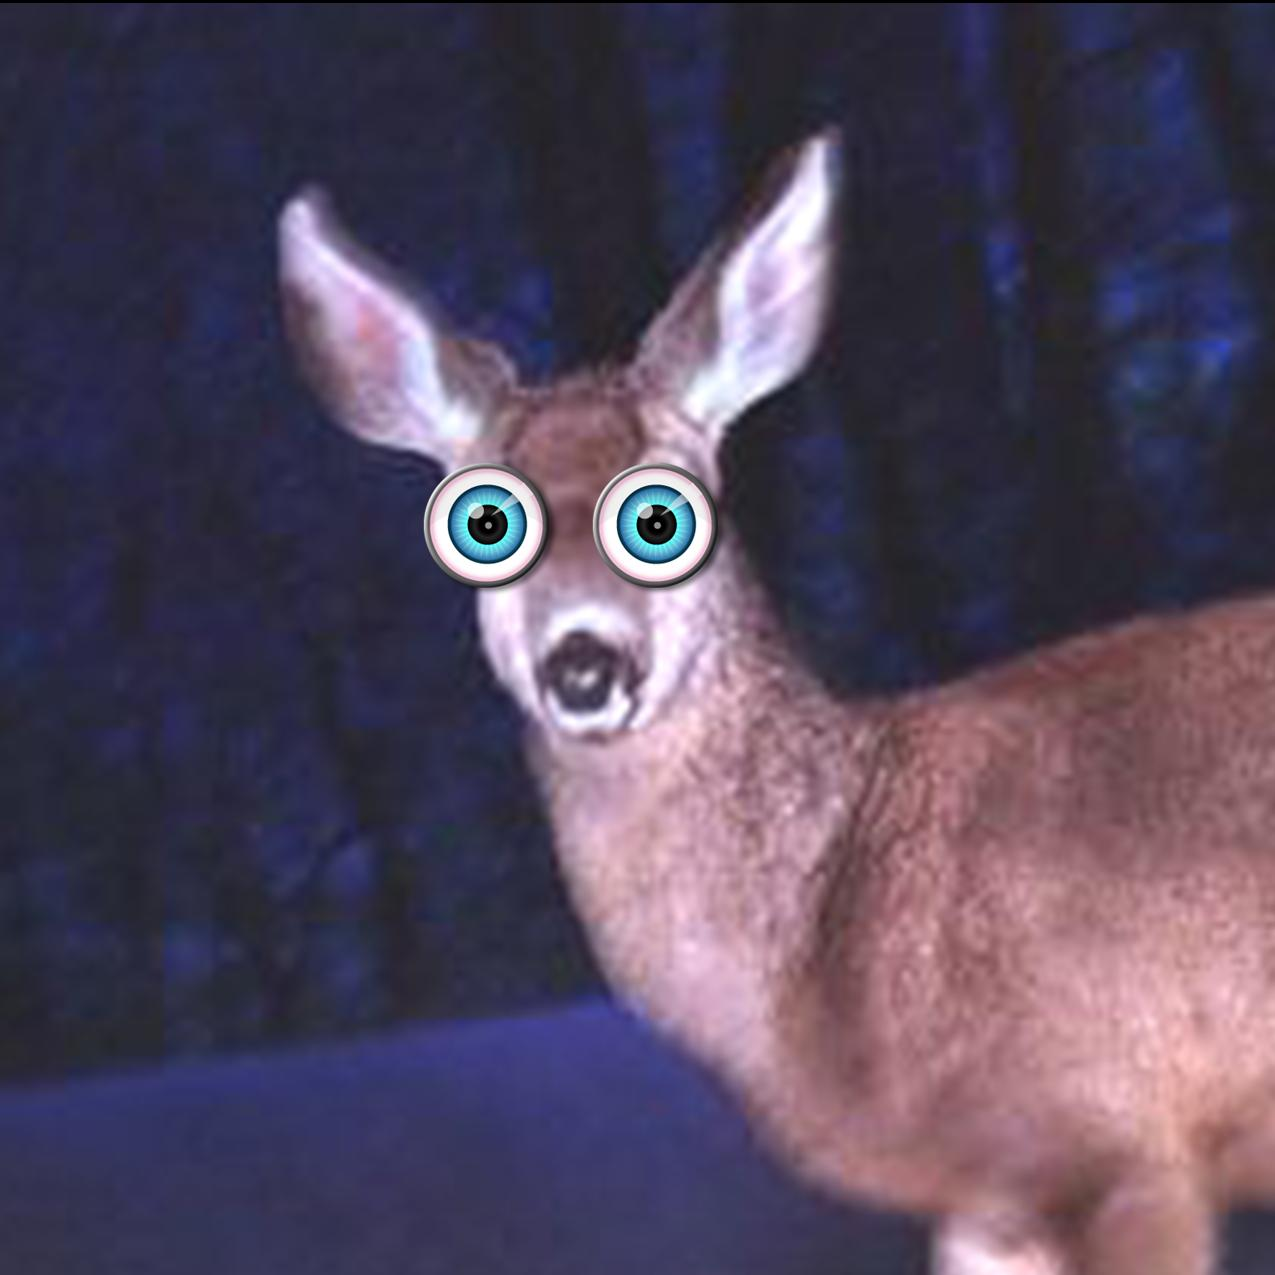 http://brandextenders.files.wordpress.com/2010/11/deer-in-headlights.jpg